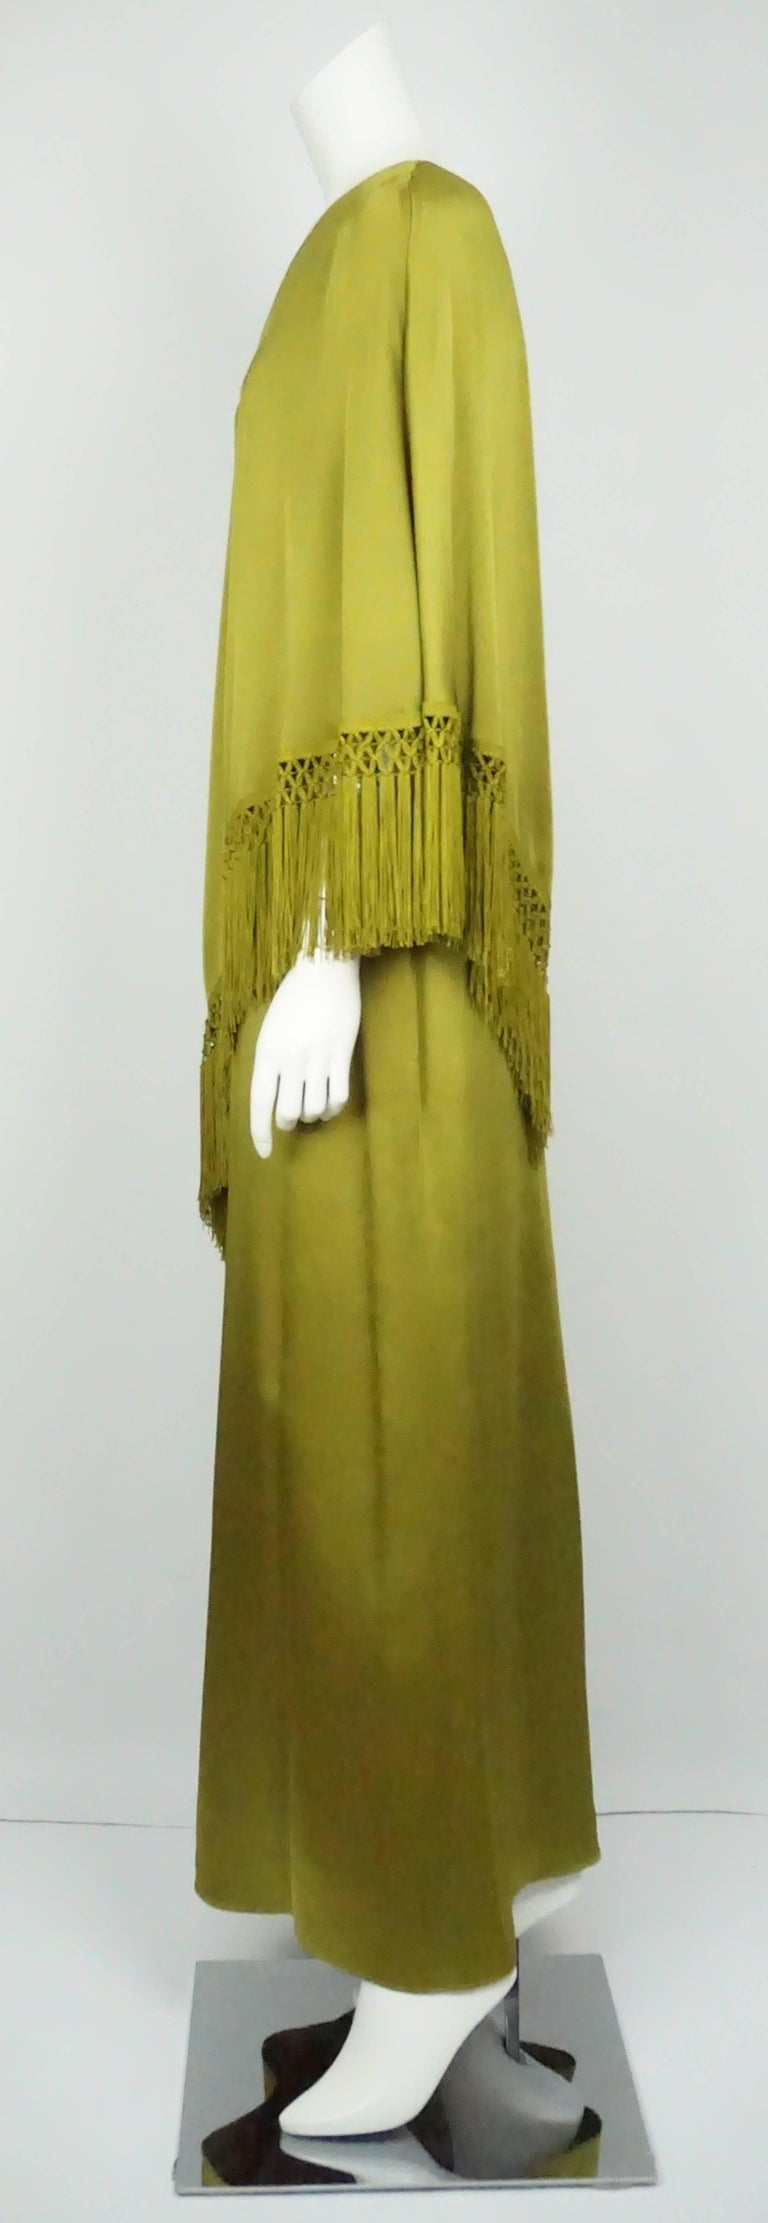 Andrew Gn Olive Green Silk One Shoulder Gown w/ Fringe - 40 This dramatic yet beautiful Andrew Gn dress is silk with a one shoulder poncho like top with fringe. There is a back zip with a unique woven detailing and it is floor length.  Measurements: